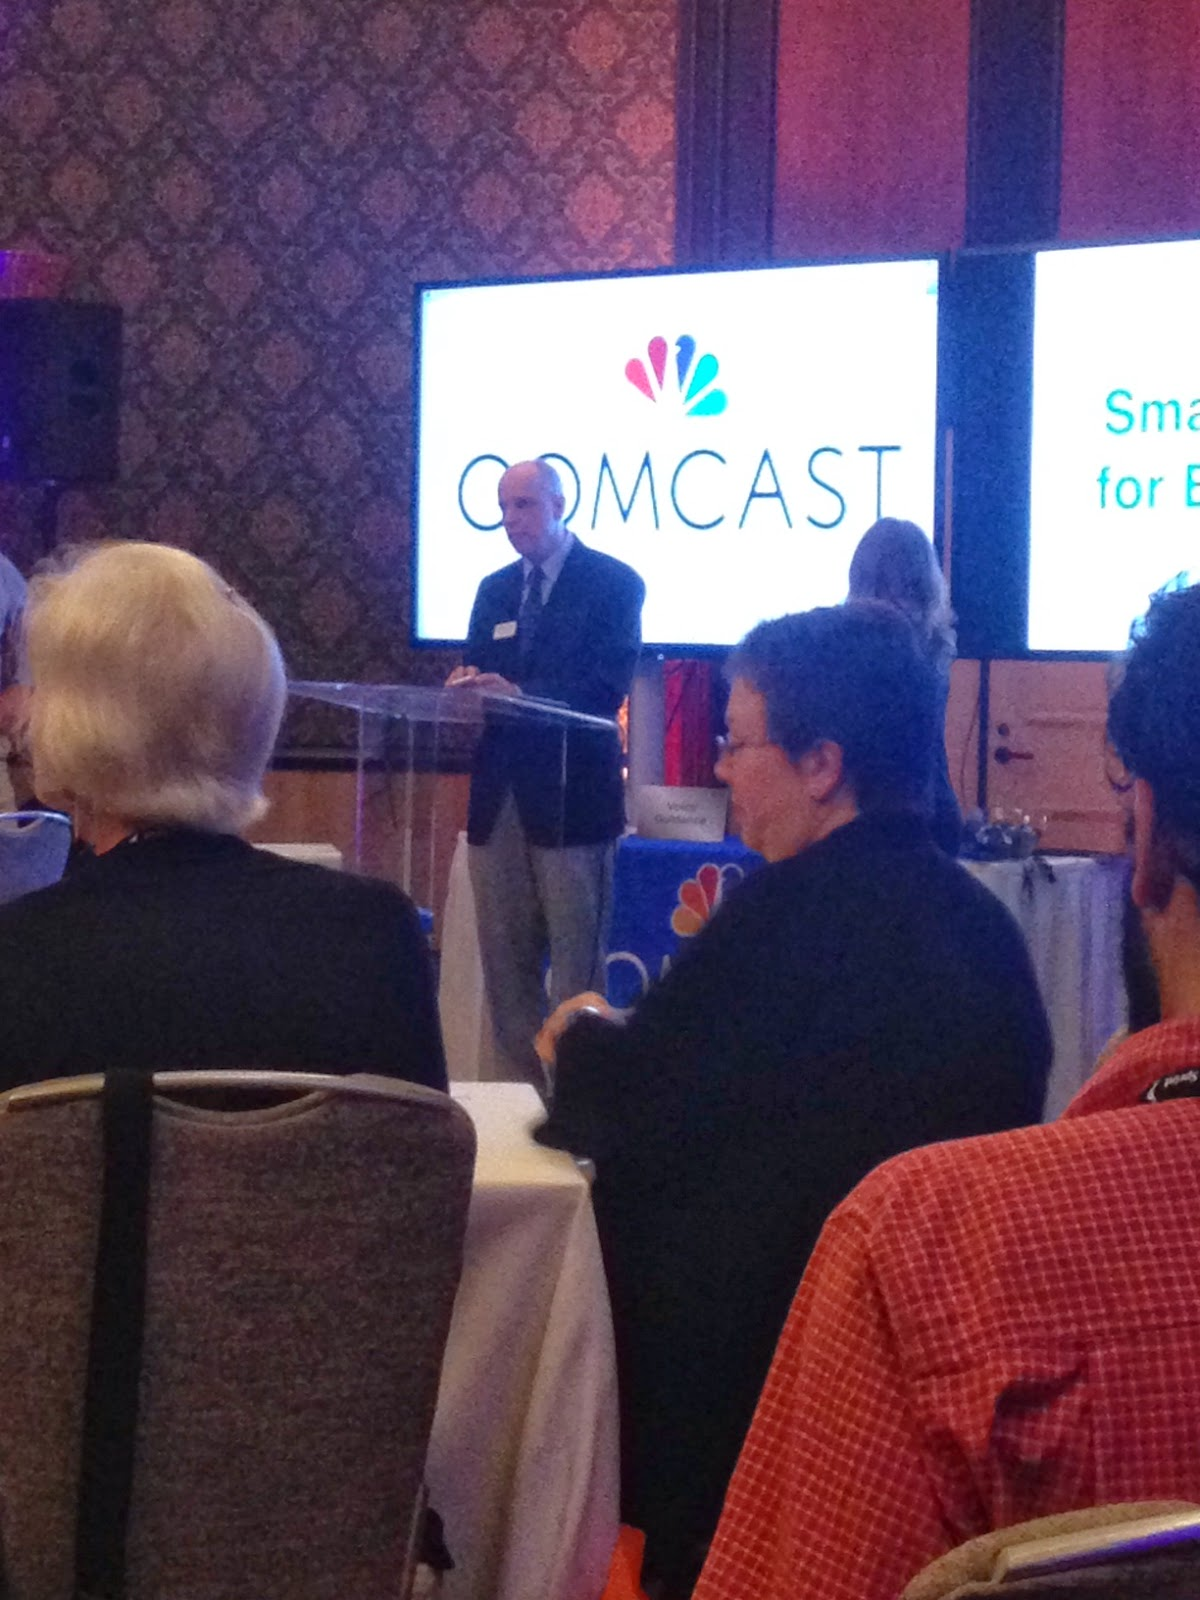 Man standing in front of podium with a lare screen in the background that says comcast. Also two women sitting at  table listening to presenter